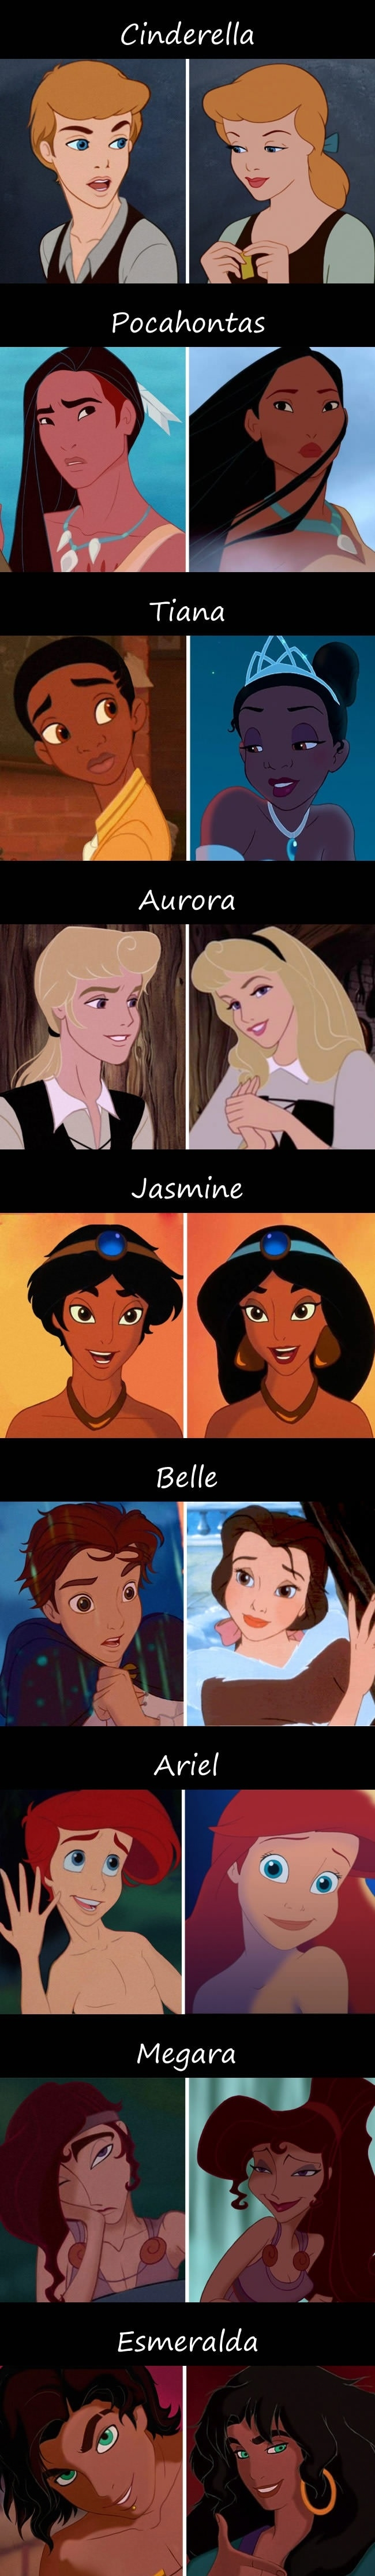 If Disney princesses were men